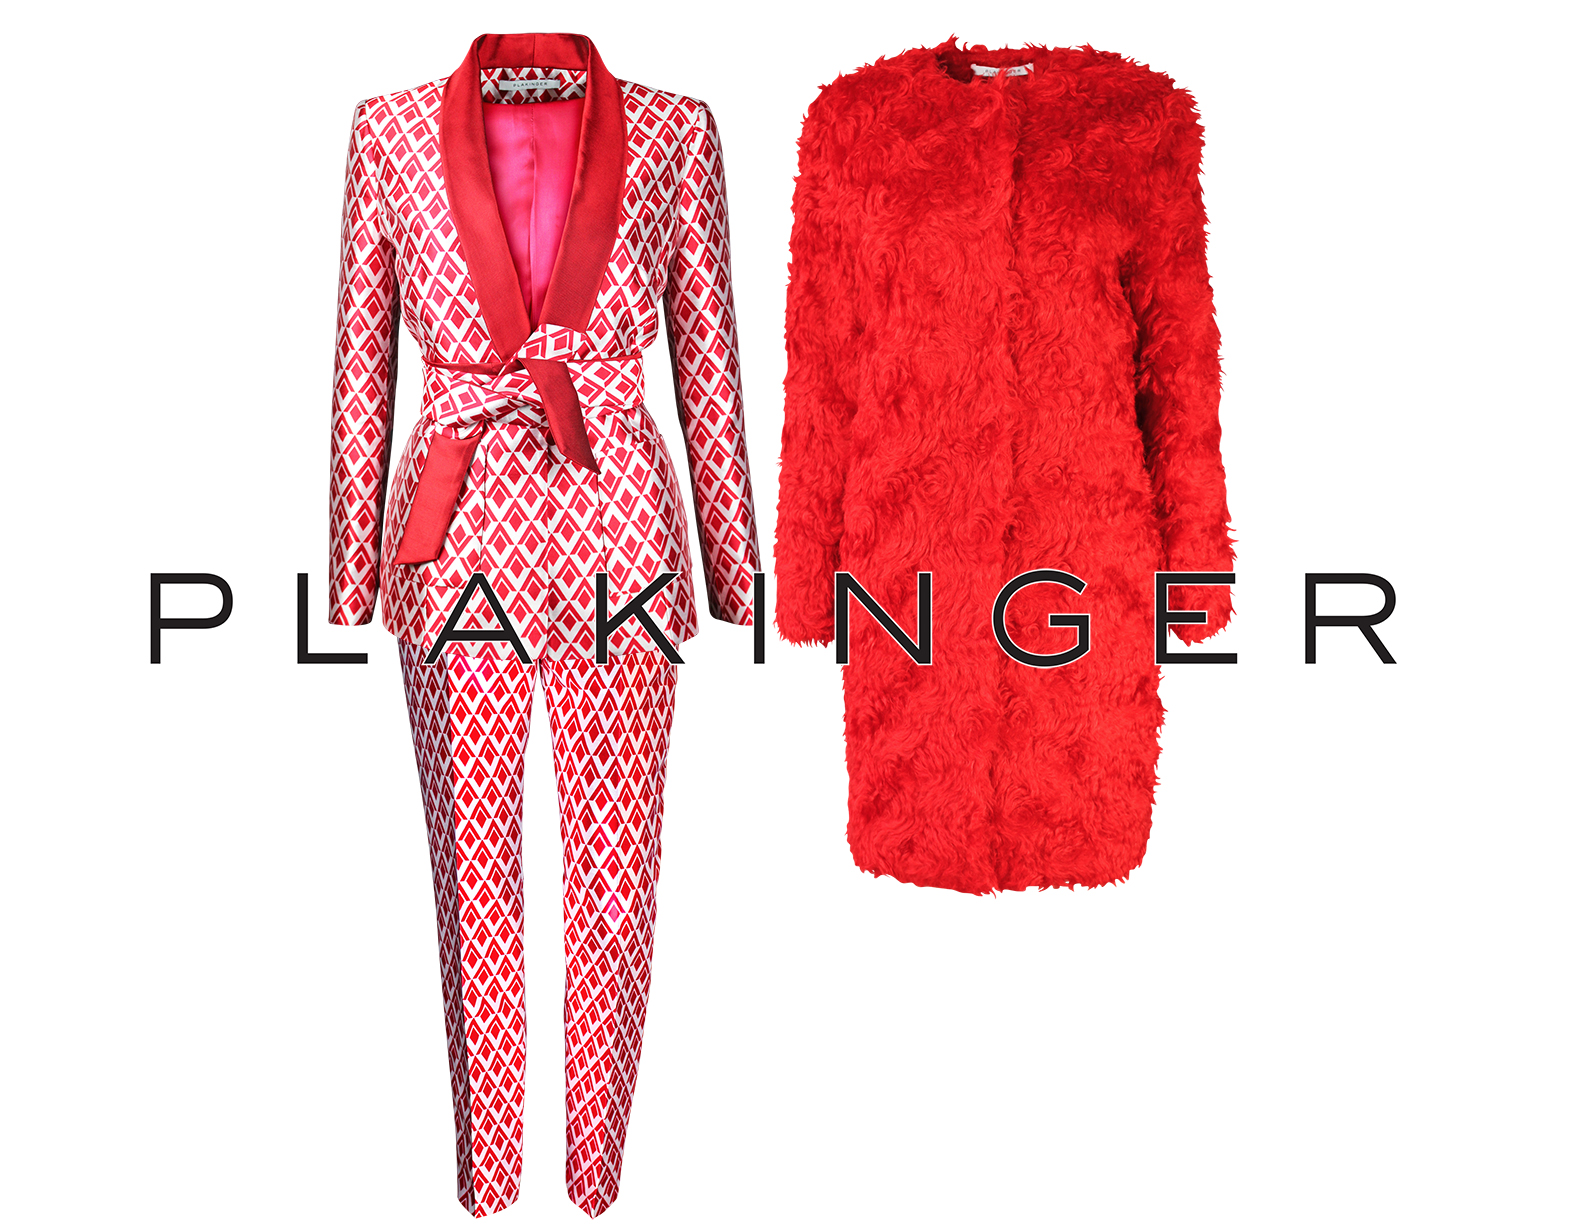 PLAKINGER GRAPHIC PRINT PANTSUIT STYLED WITH RED MOHAIR COAT